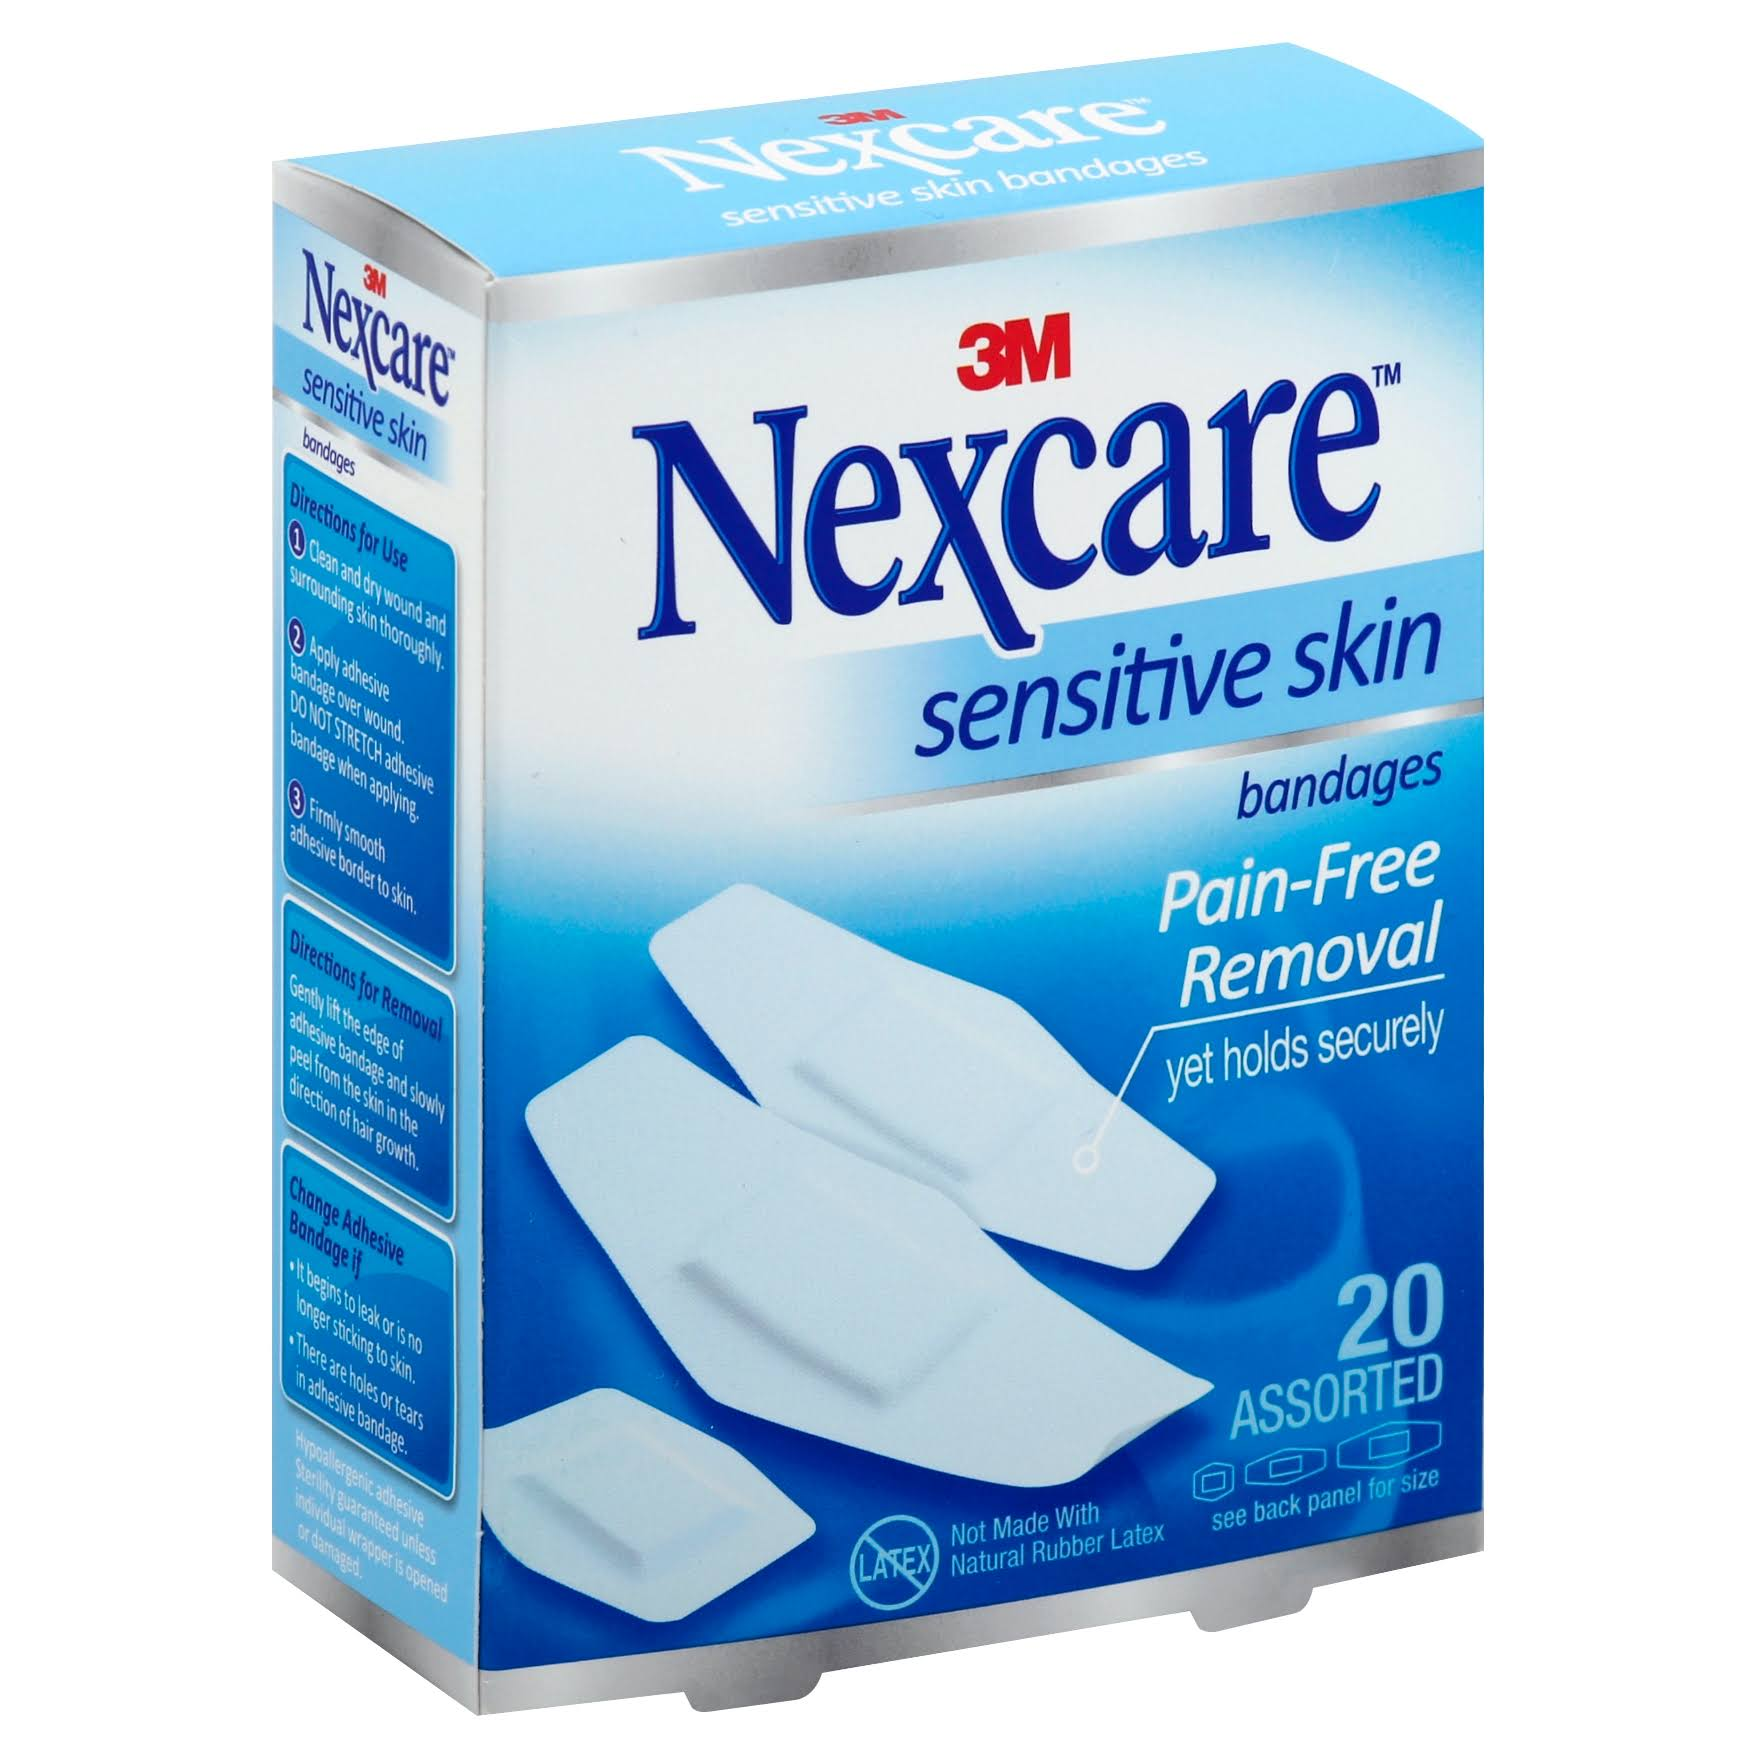 3M Nexcare Sensitive Skin Bandages - 20 Assorted